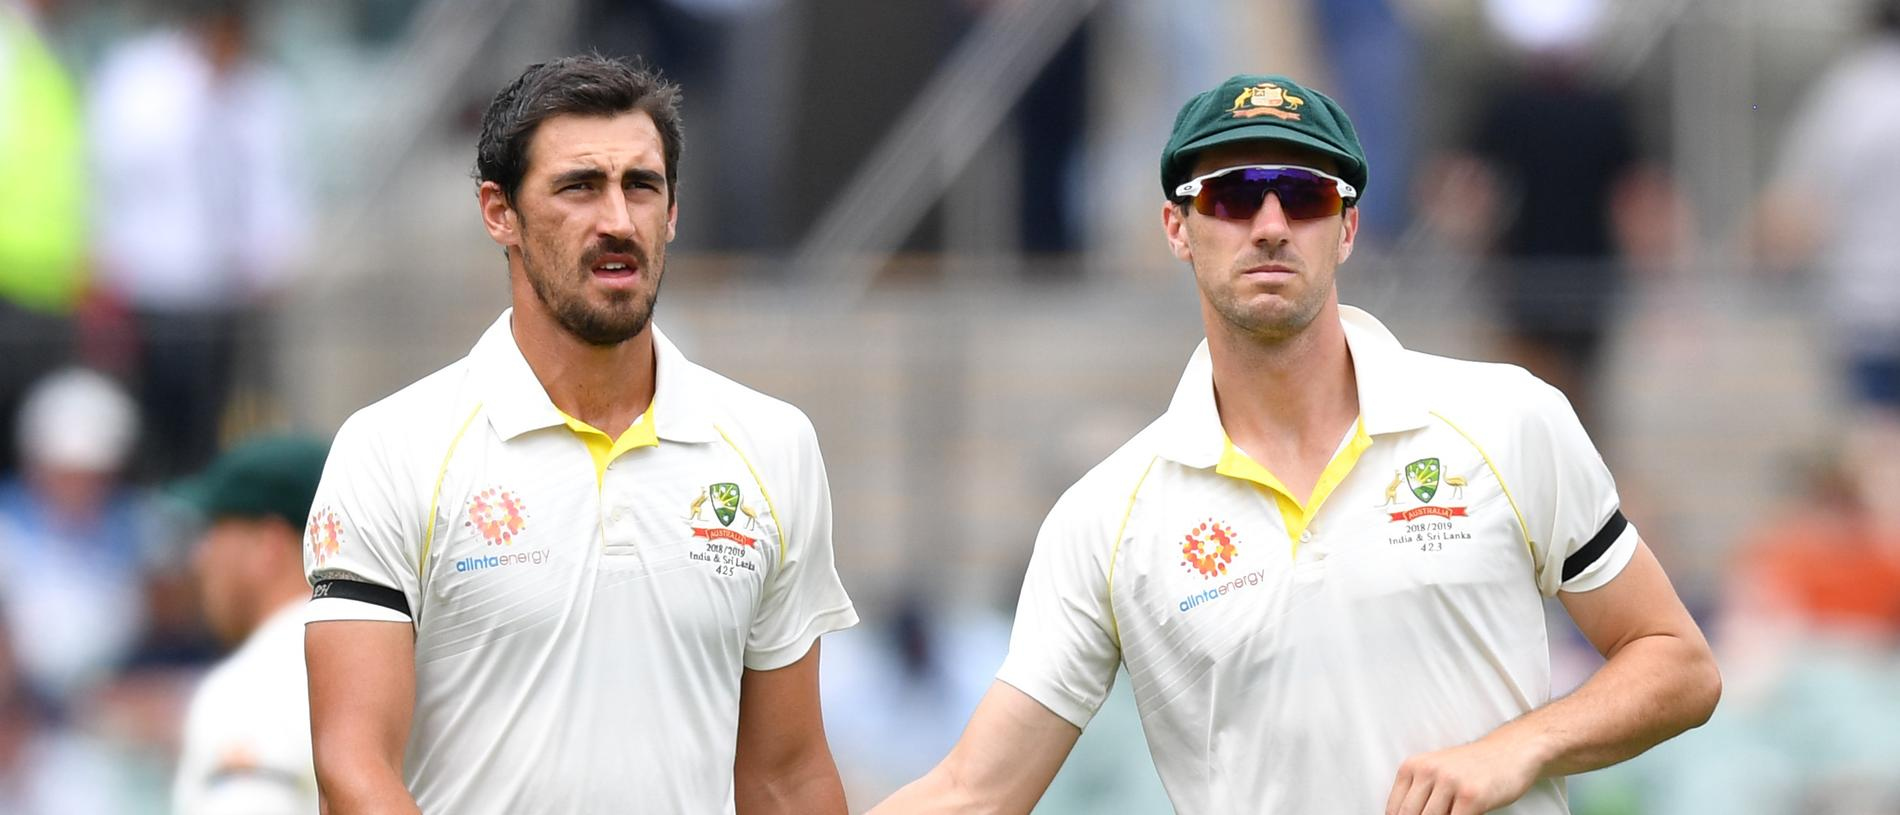 Mitchell Starc and Patrick Cummins of Australia during day four of the first Test match between Australia and India at the Adelaide Oval in Adelaide, Sunday, December 9, 2018. (AAP Image/David Mariuz) NO ARCHIVING, EDITORIAL USE ONLY, IMAGES TO BE USED FOR NEWS REPORTING PURPOSES ONLY, NO COMMERCIAL USE WHATSOEVER, NO USE IN BOOKS WITHOUT PRIOR WRITTEN CONSENT FROM AAP